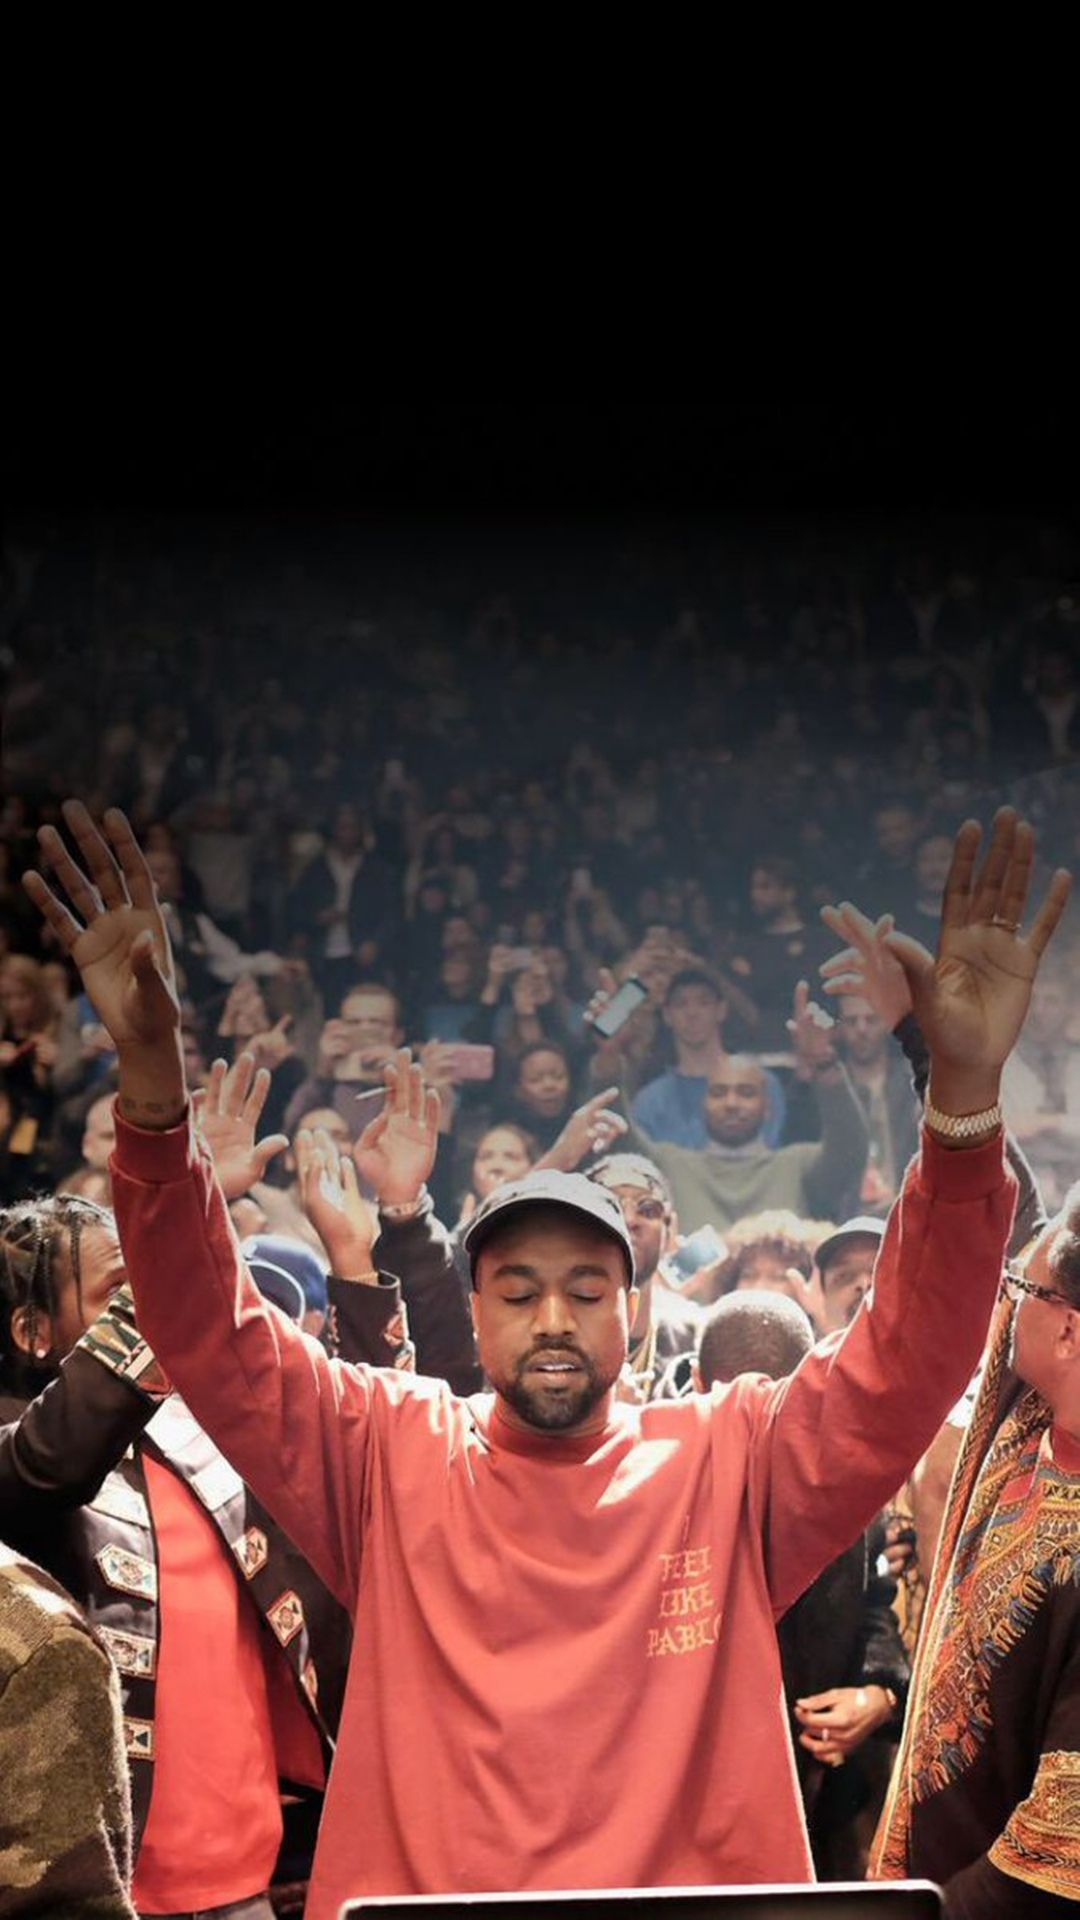 Kanye Hands Up Wallpaper 65 Pictures In 2020 Phone Lock Screen Wallpaper Kanye West Wallpaper Lock Screen Wallpaper